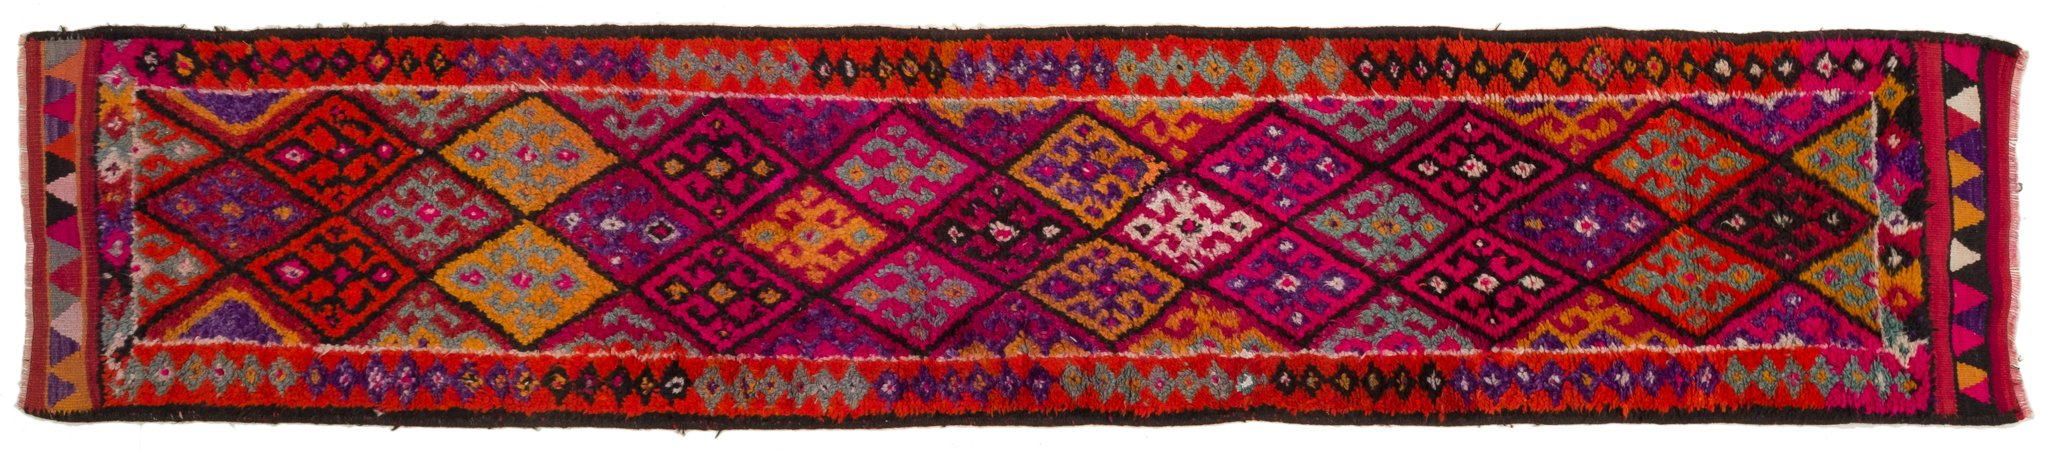 Vintage Turkish Runner Rug Anca